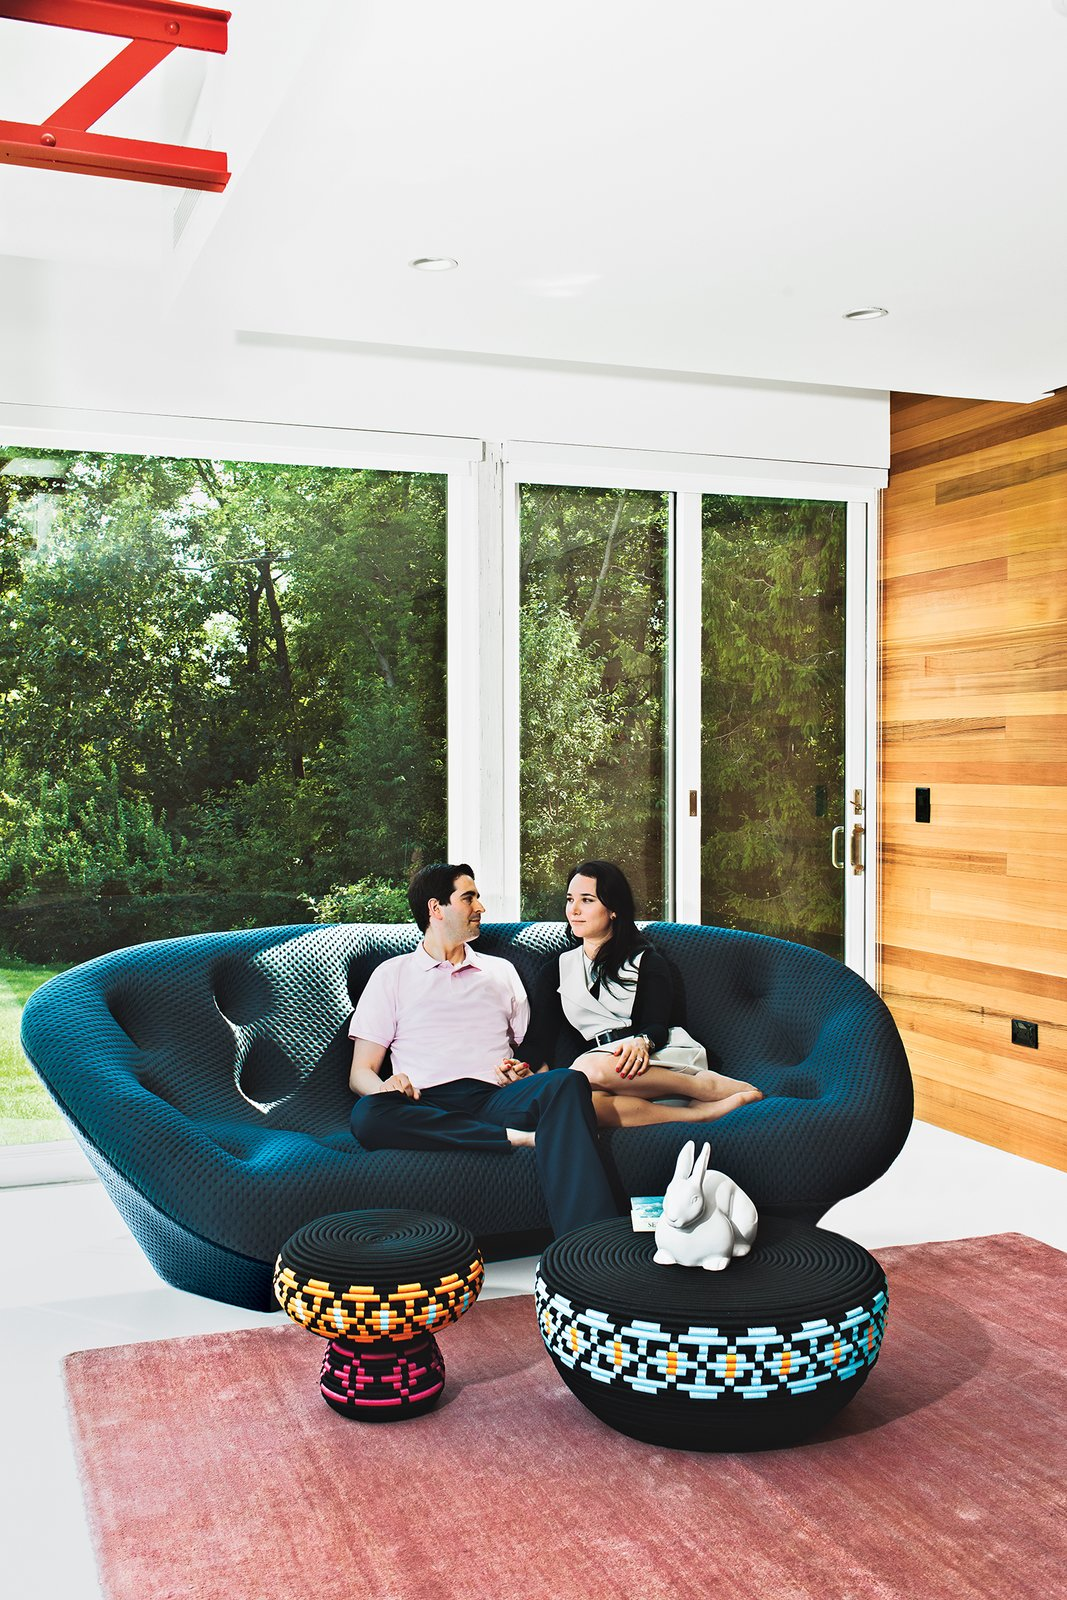 """Living Room, Sofa, Stools, and Rug Floor Steven and Tata relax in their living room. """"The house has always been deemed the 'great escape,'"""" says Steven. """"It's a very special place for us."""" The Superheroes stool and table are by Swedish designers Glimpt Studio for Cappellini, the blush-colored rug is from ABC Carpet & Home, and the Pan Pan rabbit figurine is by Ligne Roset.  Photo 12 of 12 in The Midcentury Spirit is Alive and Well in This Hudson Valley Escape"""